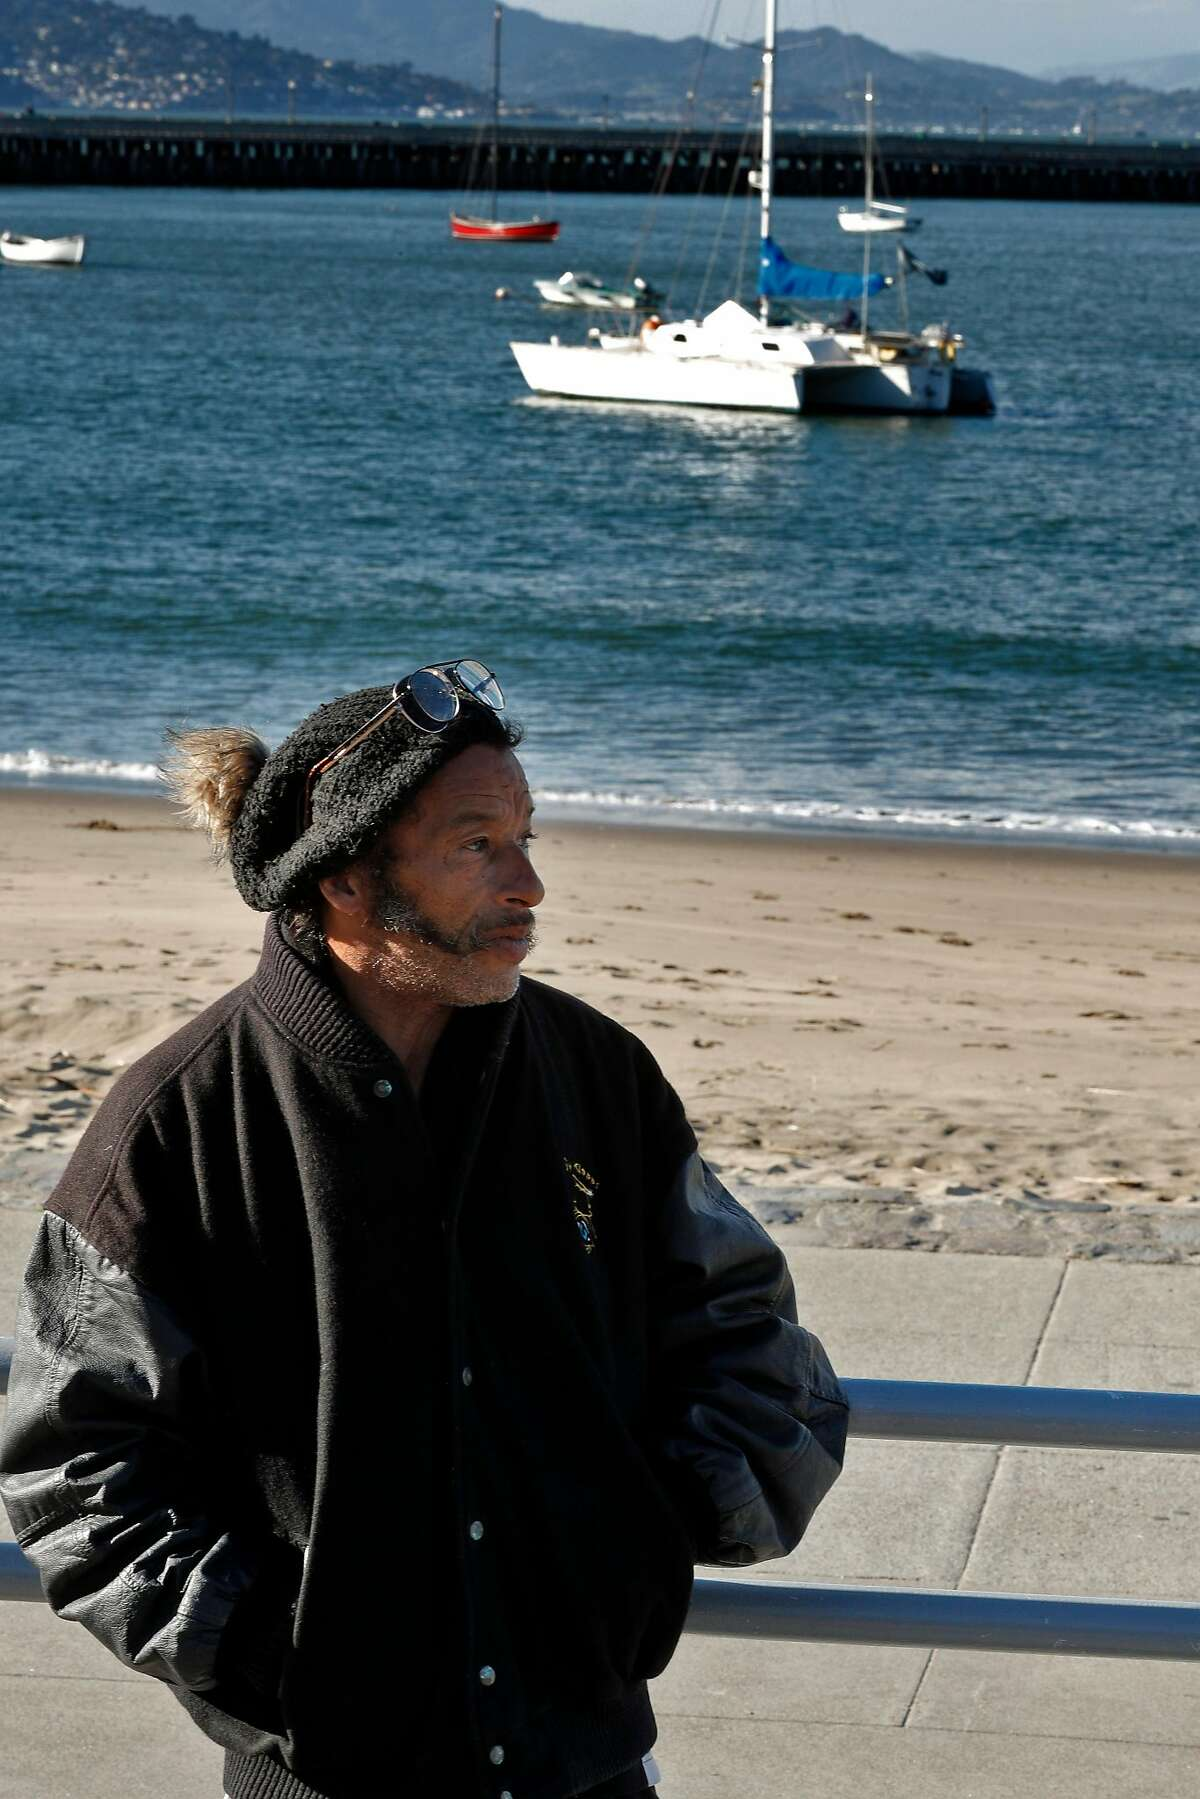 Bryan Pennington stands near the bleachers off the beach at Aquatic Park in San Francisco, Calif., on Monday, February 26, 2018. For months there has been a trimaran sailboat illegally anchored in Aquatic Park by Pennington who is living aboard. The Dolphin Club has been trying to get rid of him because he is polluting the bay and interfering with their swimming area. The Dolphin Club took the matters to the Presidio police, which has jurisdiction and they had a hearing in federal court.